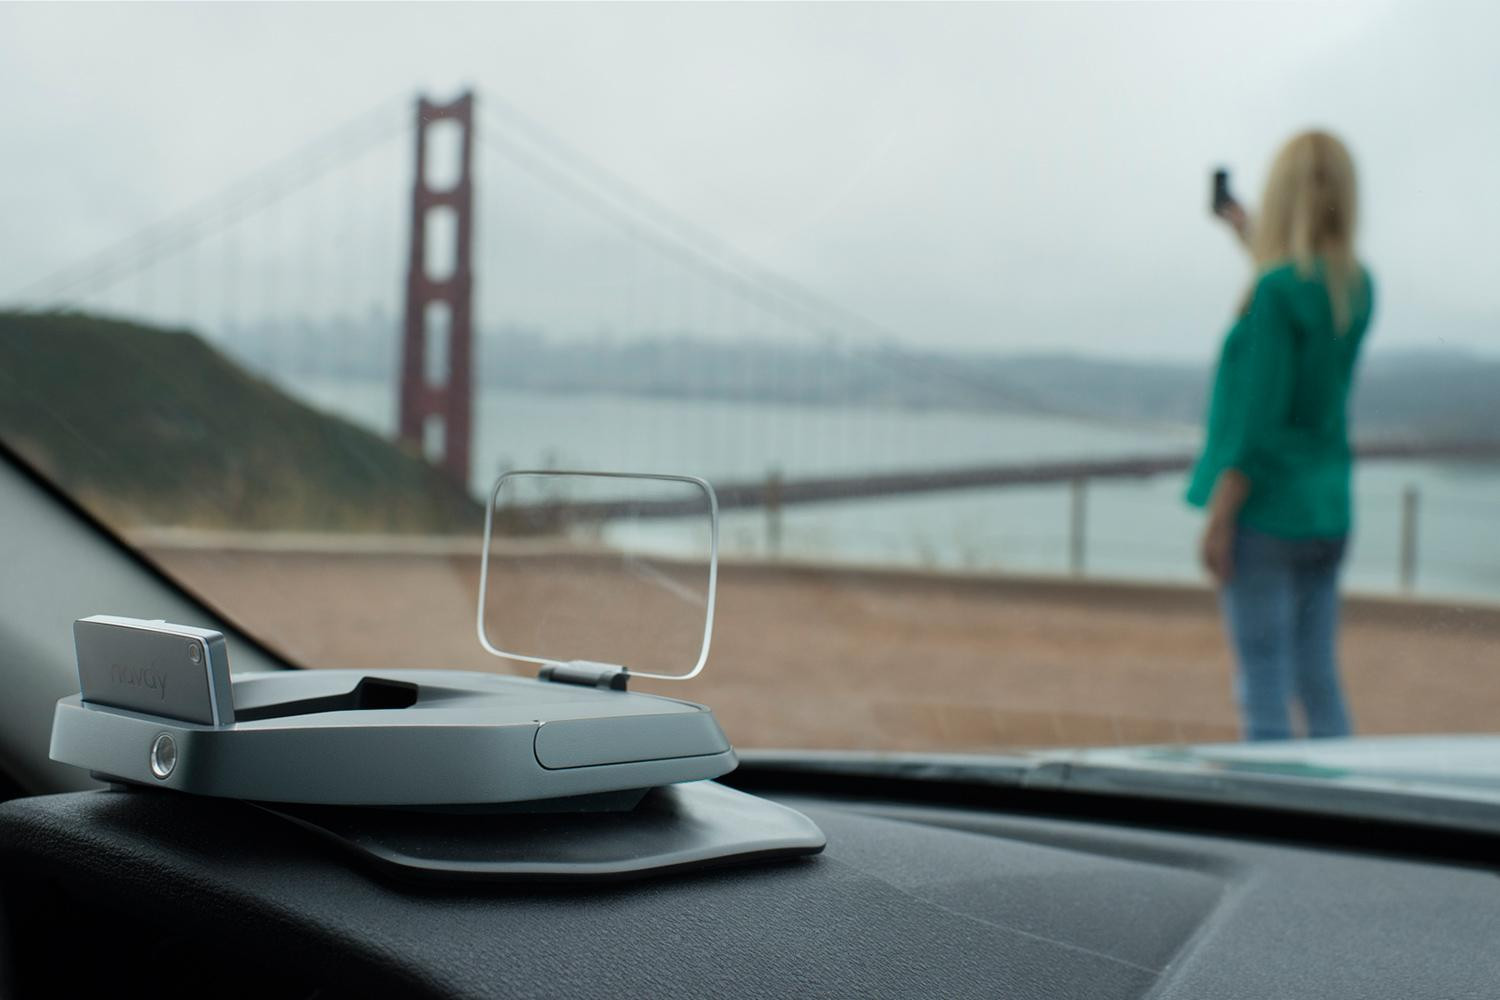 Navdy partners with Harman to distribute its heads-up display worldwide